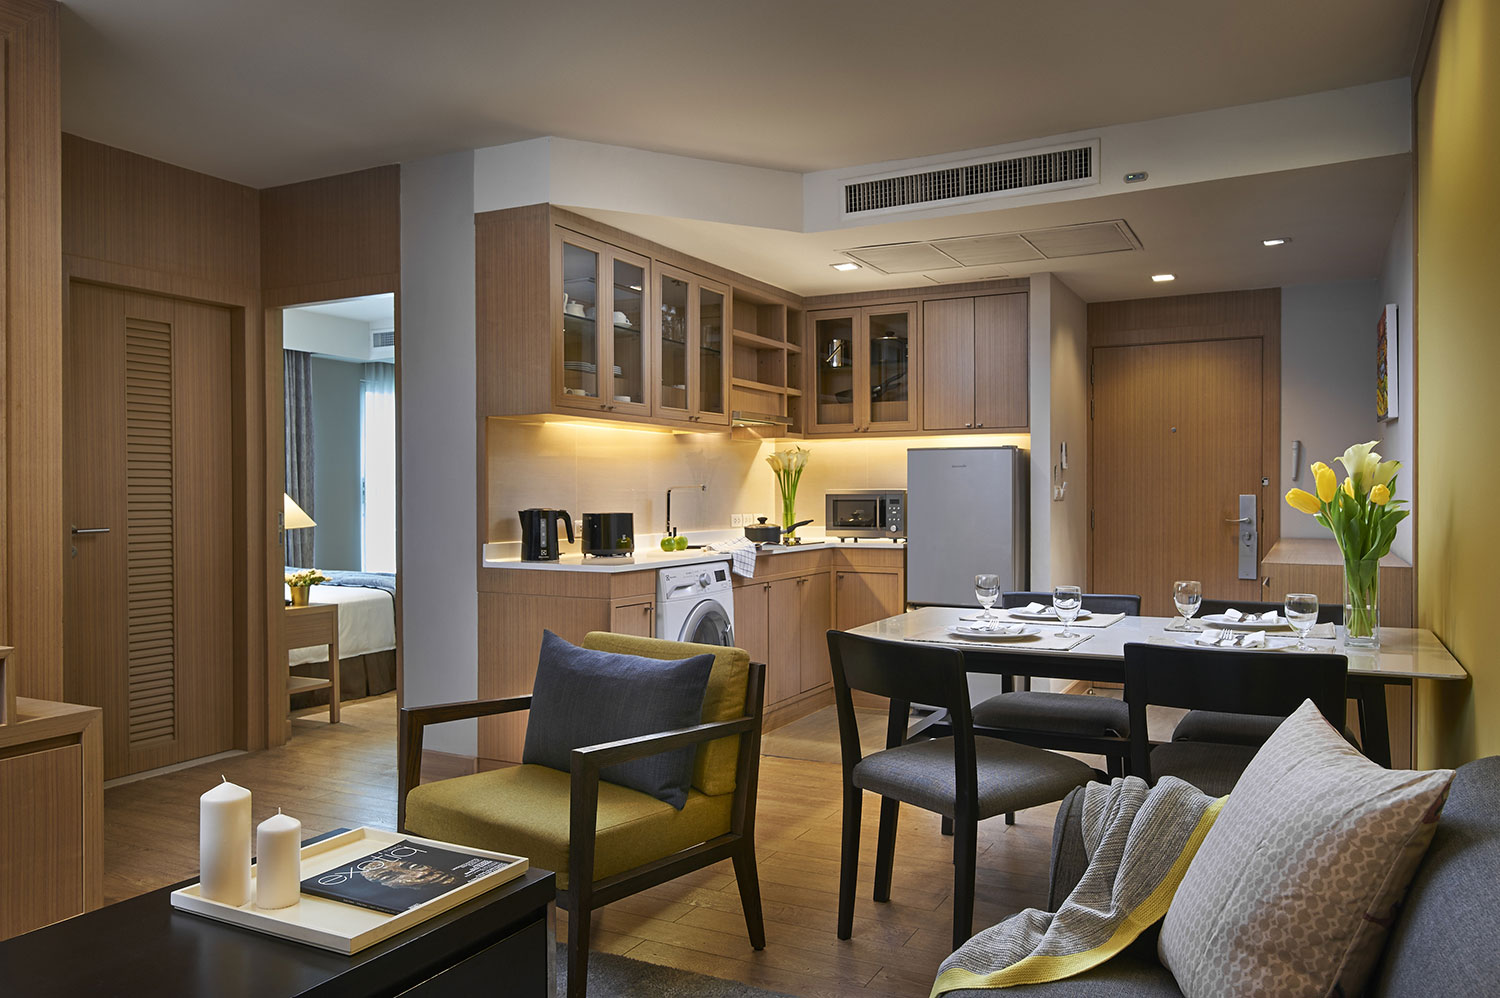 Shama-Lakeview-Asoke-Bangkok_Two-Bedroom-Deluxe-_Living,-Dining-and-Kitchen